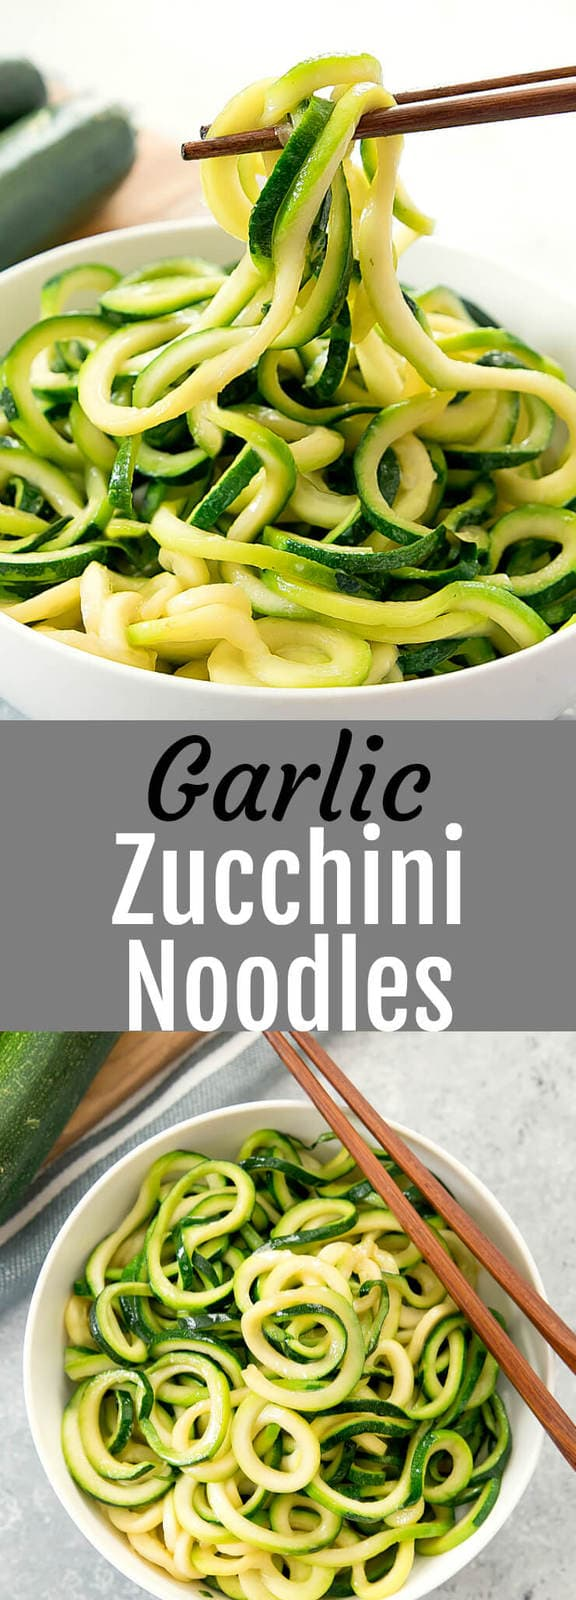 Garlic Zucchini Noodles. A lightened up version of Asian-style garlic butter noodles. So flavorful and easy. Ready in less than 30 minutes.